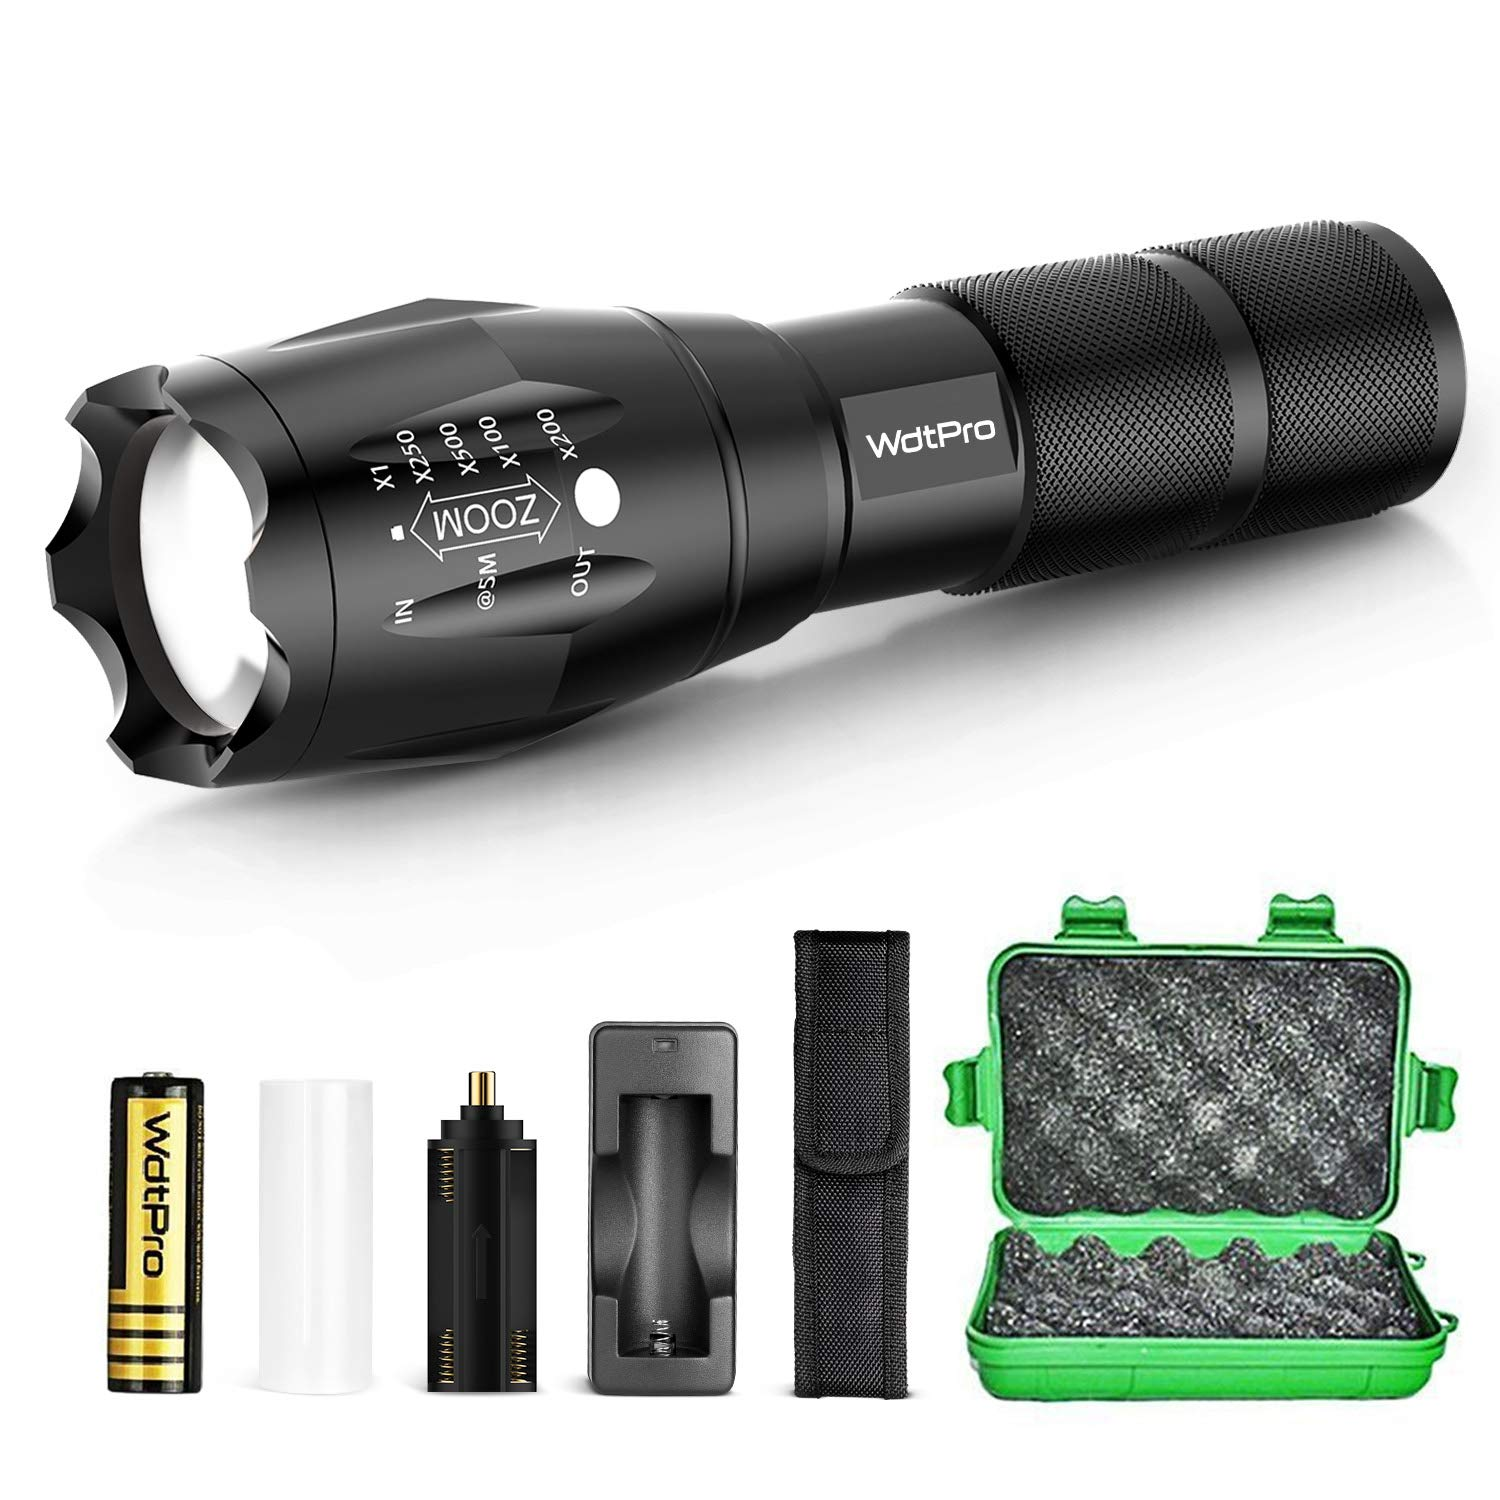 WdtPro Tactical Flashlight with Rechargeable Battery, Flashlight Holster & Charger - High Lumen XML T6 LED Flashlights, 5 Modes, Zoomable, Water Resistant for Camping Emergency by WdtPro